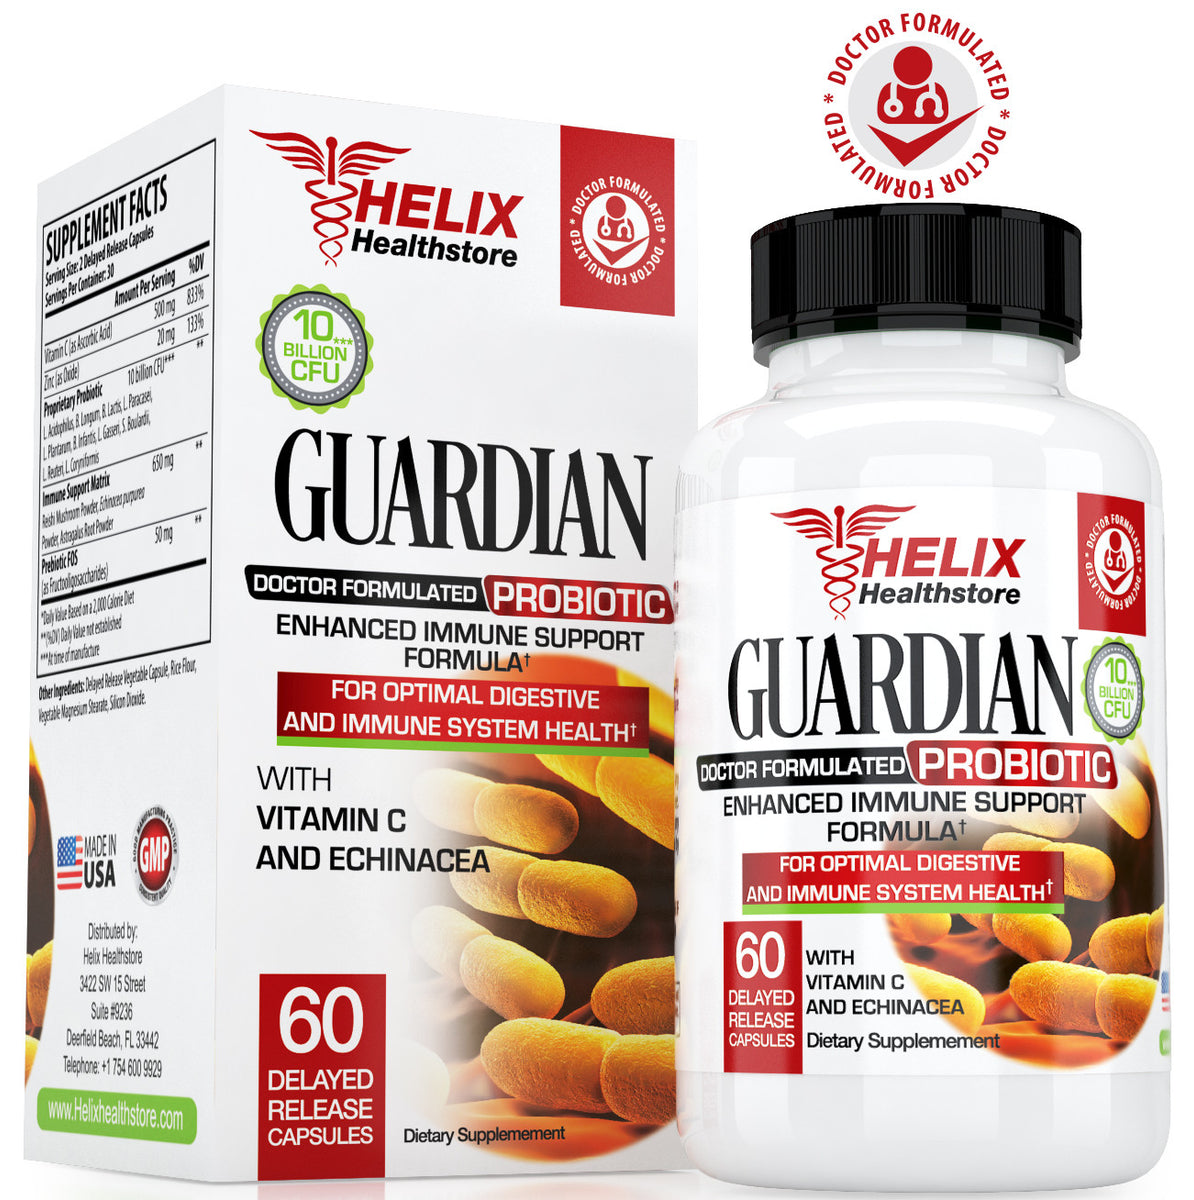 Guardian probiotic supplement to boost immune system health with Vitamin C tablets